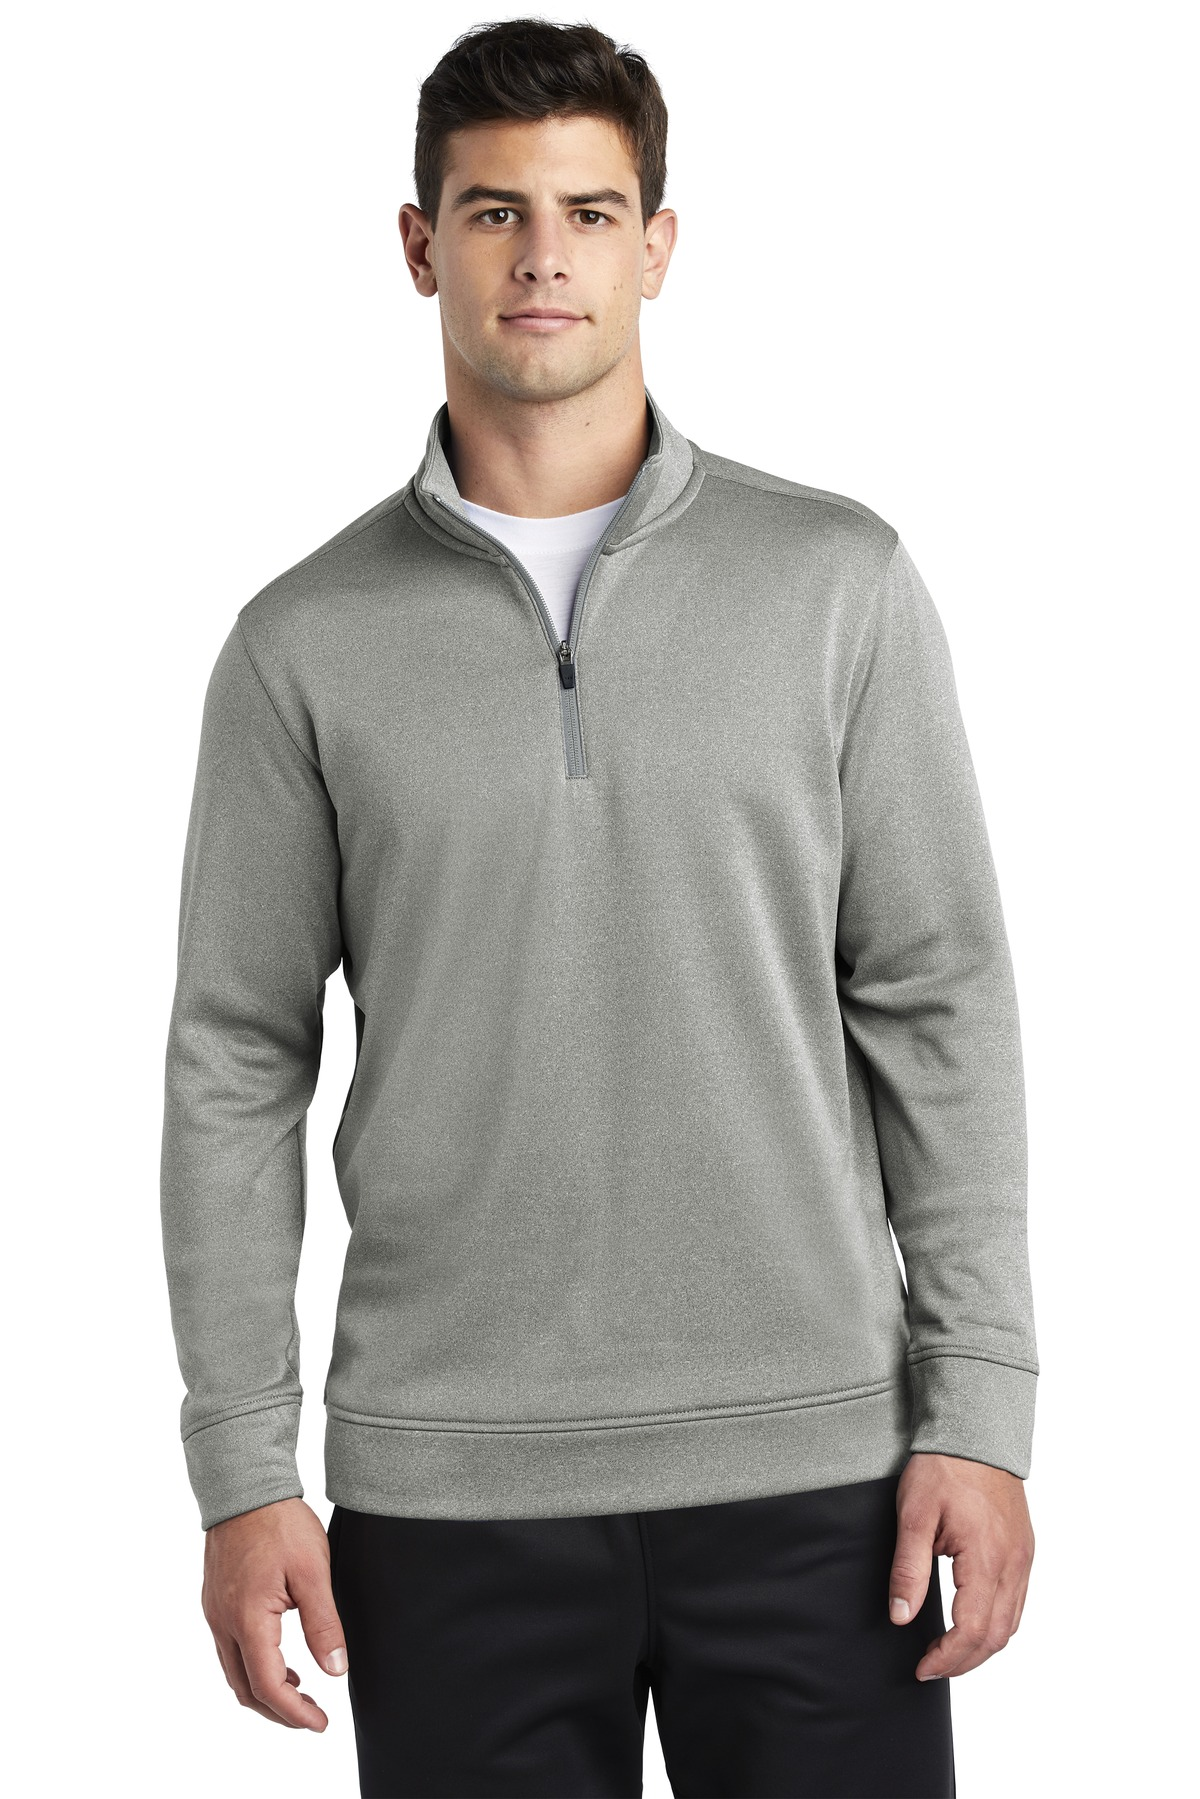 Sport-Tek  ®  PosiCharge  ®  Sport-Wick  ®  Heather Fleece 1/4-Zip Pullover. ST263 - Dark Silver Heather